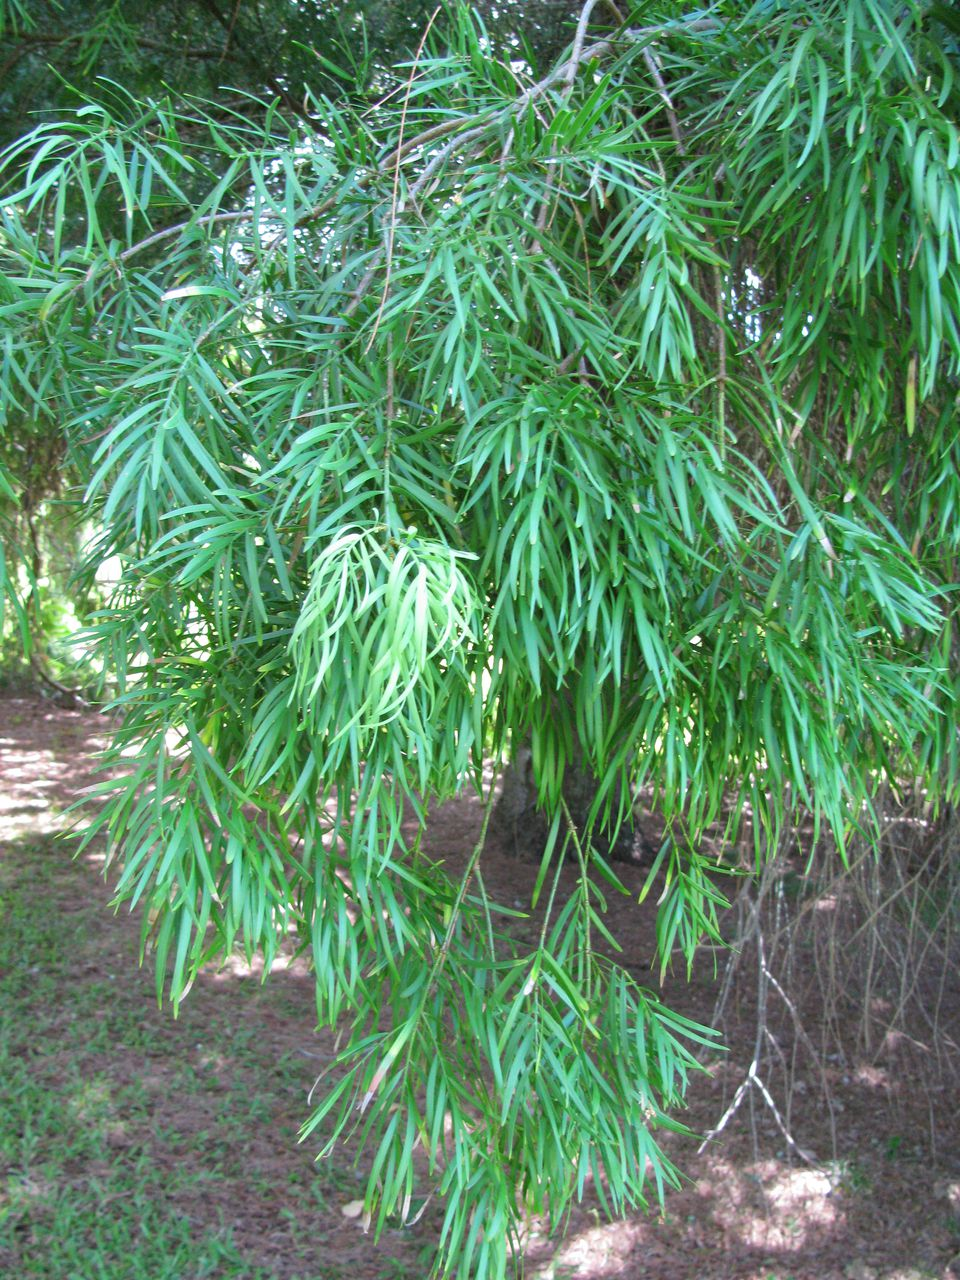 The fern pine works well as a specimen tree with its graceful, weeping branches.